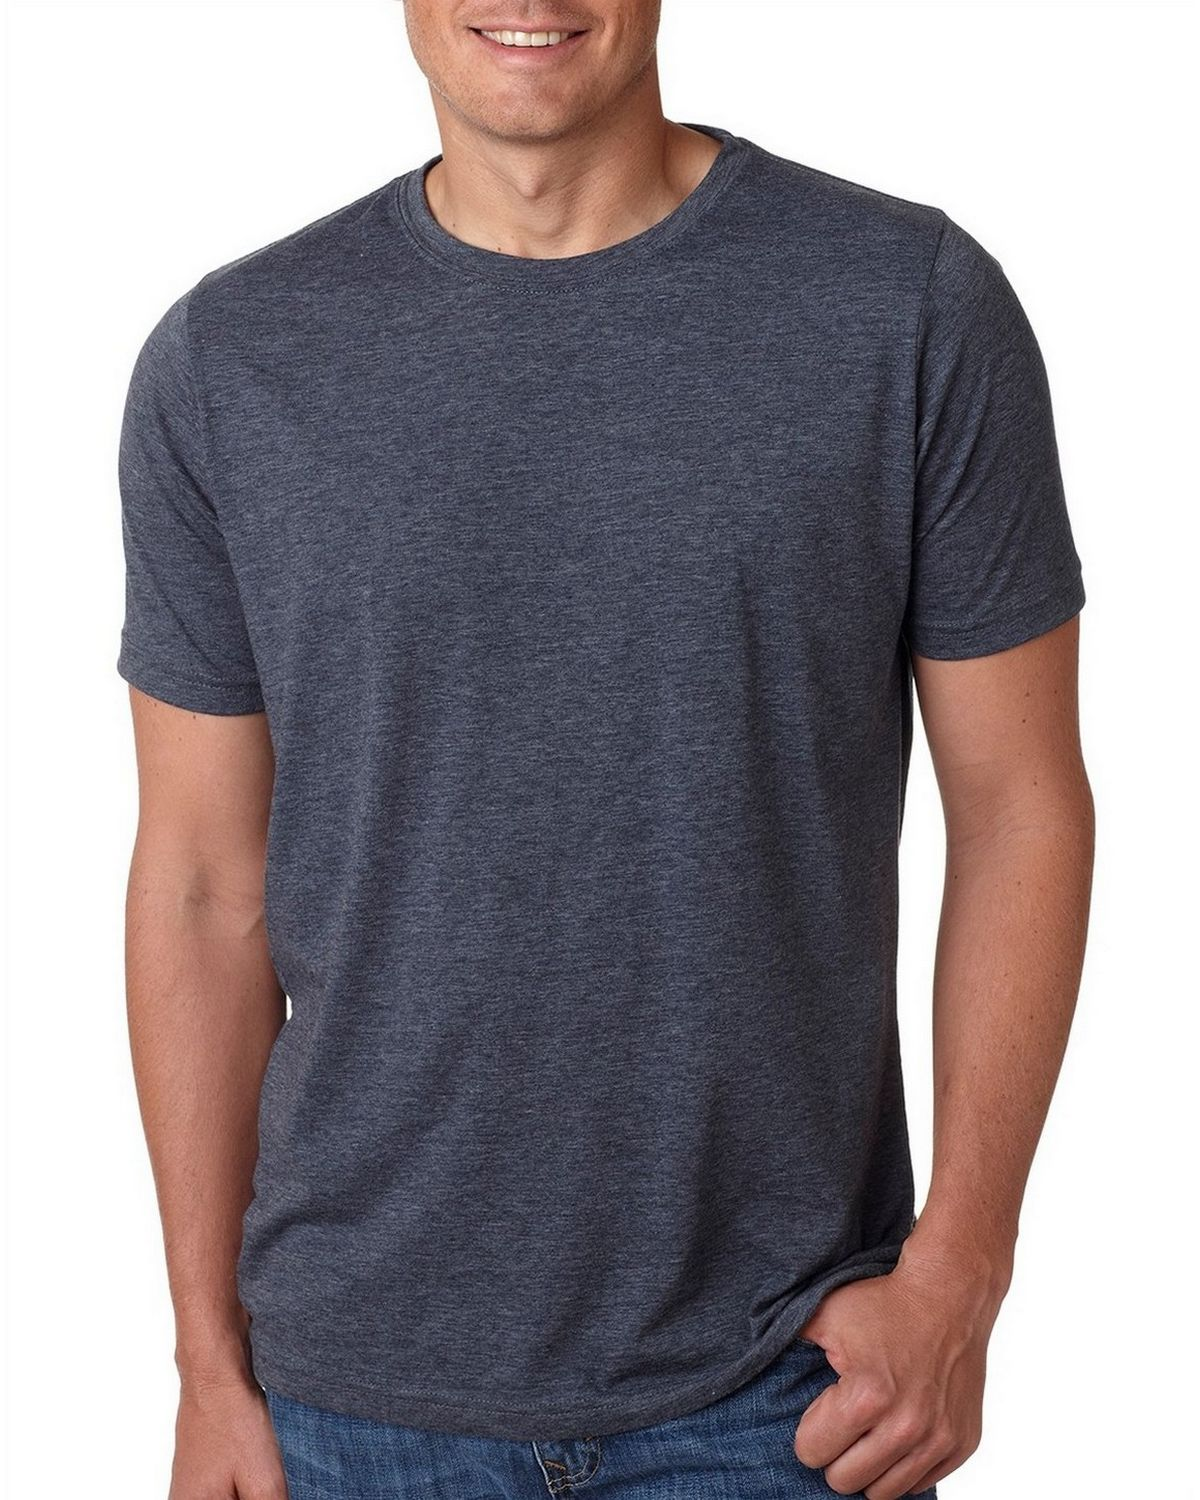 Next Level Mens Poly//Cotton Tee 6200-Antique Denim-Small 12 Pack